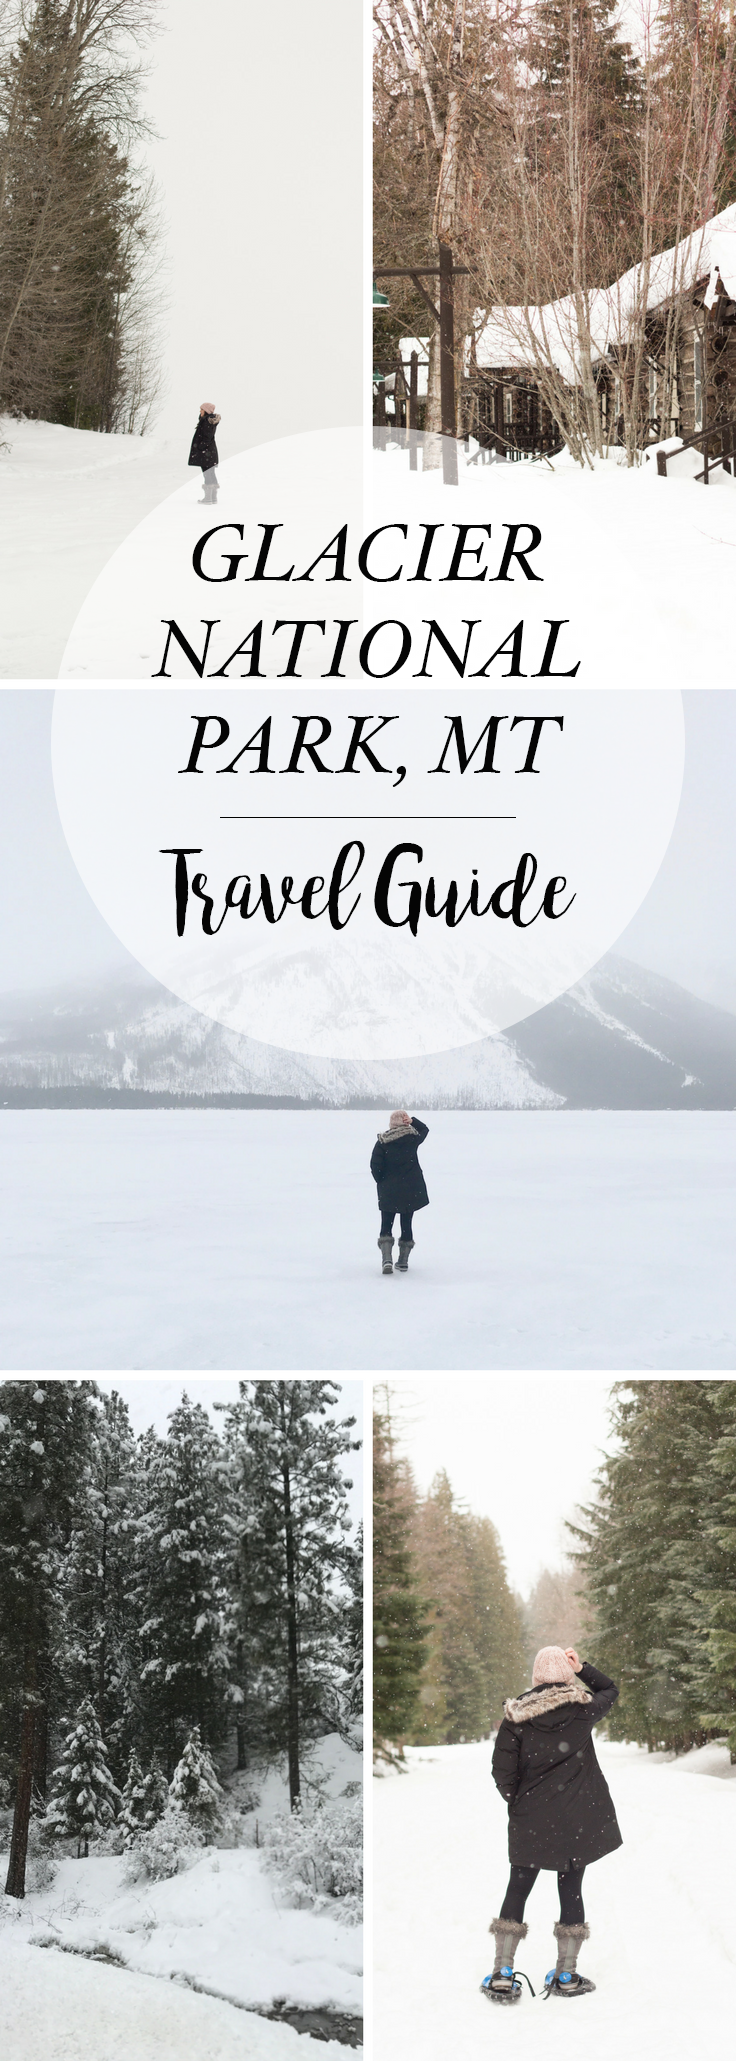 Glacier National Park is a must see view on your bucket list. Frozen lakes and a winter wonderland.